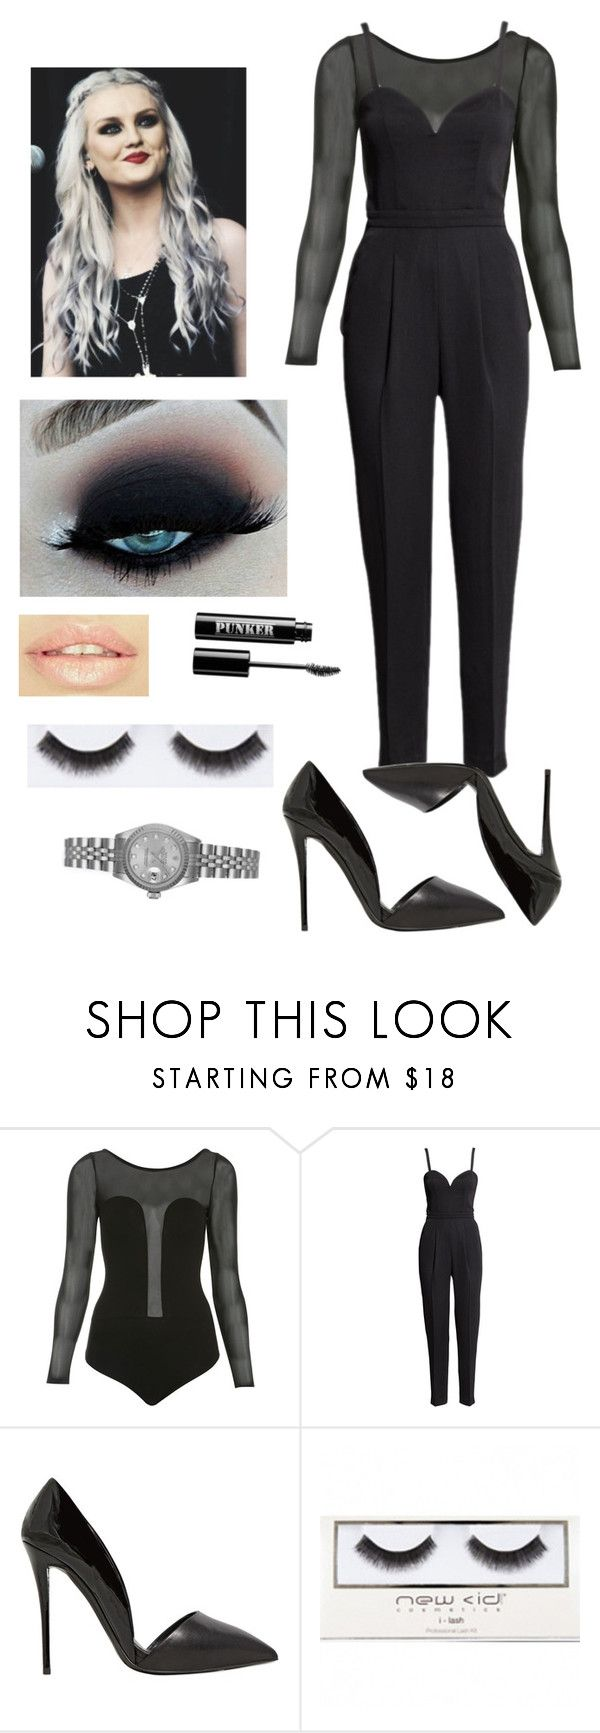 """Untitled #234"" by justddhaha ❤ liked on Polyvore featuring Miss Selfridge, H&M, Giuseppe Zanotti, New CID Cosmetics, Ardency Inn and Rolex"